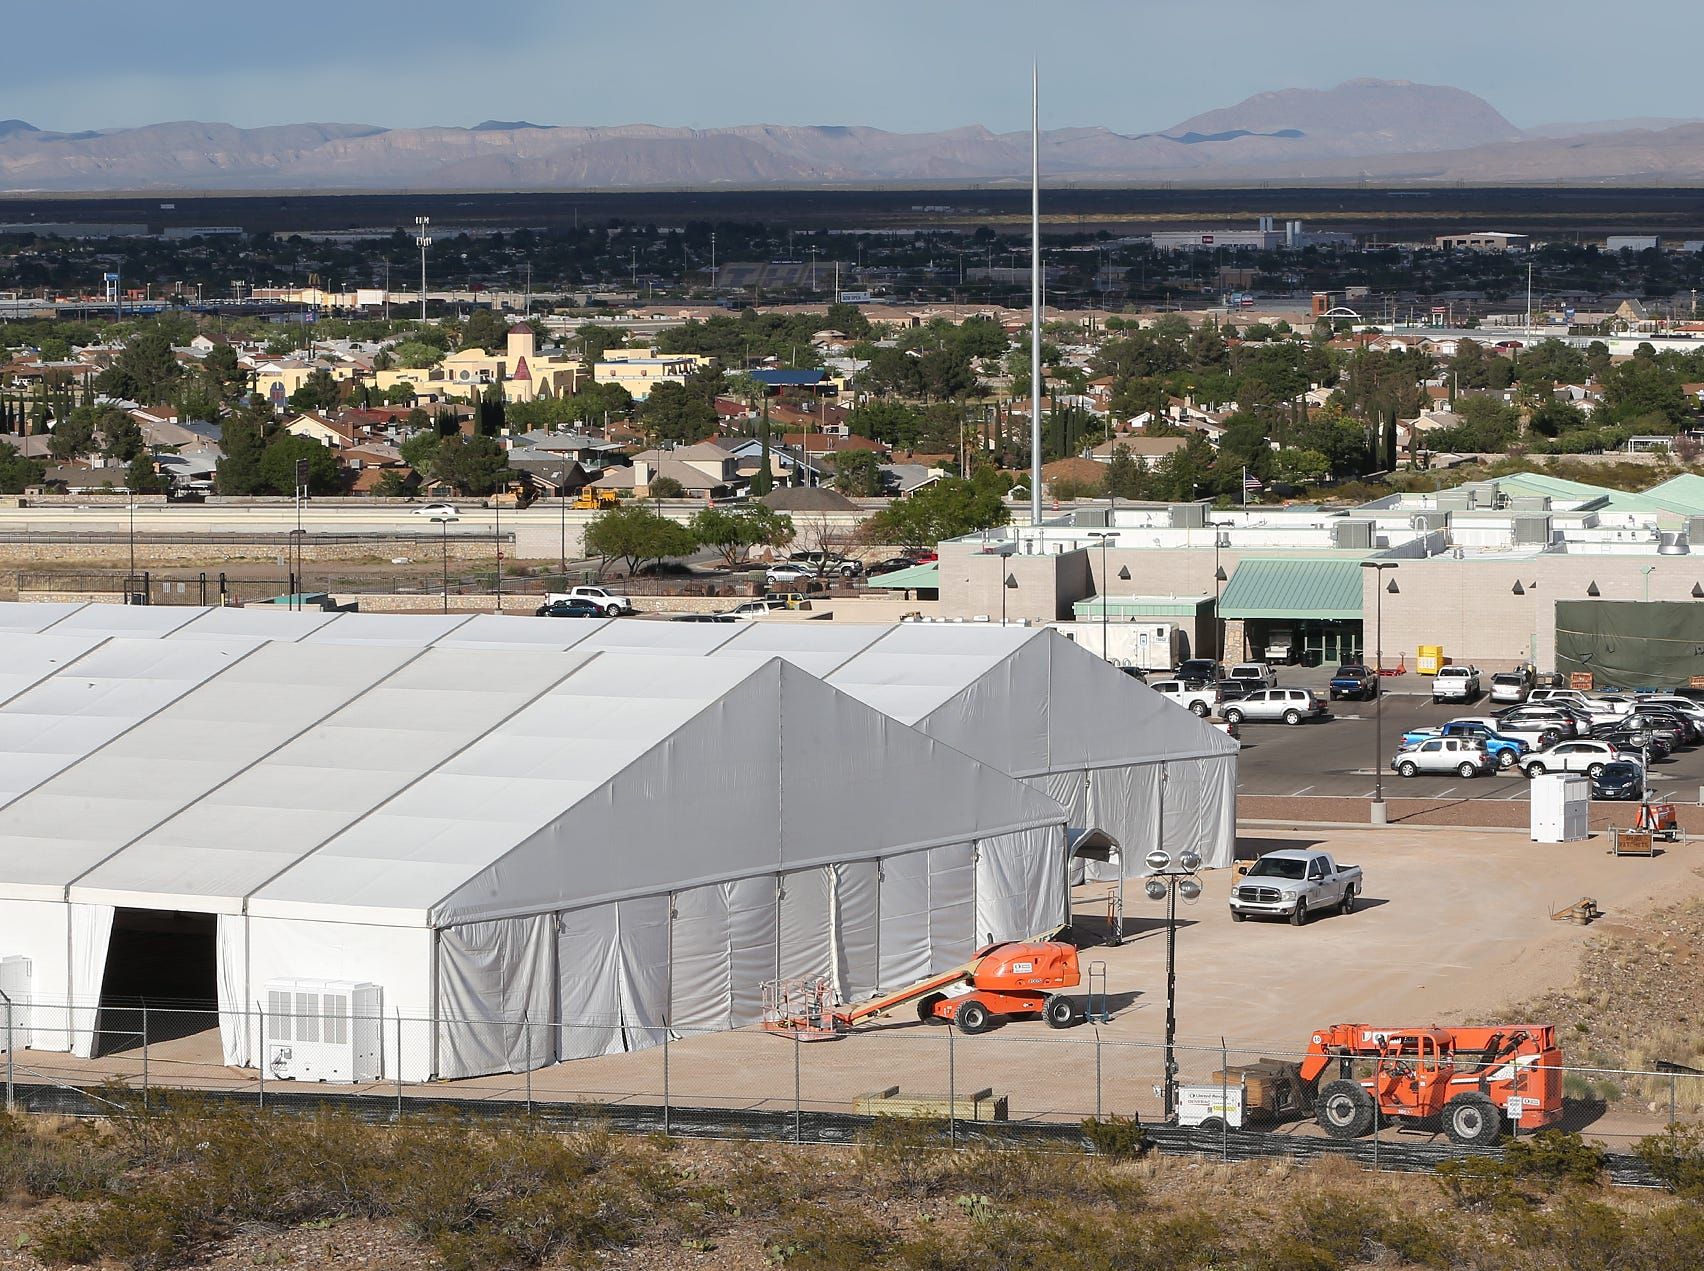 Two tents have been erected at the U.S. Border Patrol offices on Hondo Pass. The center is in response to an increased number of Central and South Americans arriving in the United States requesting asylum.